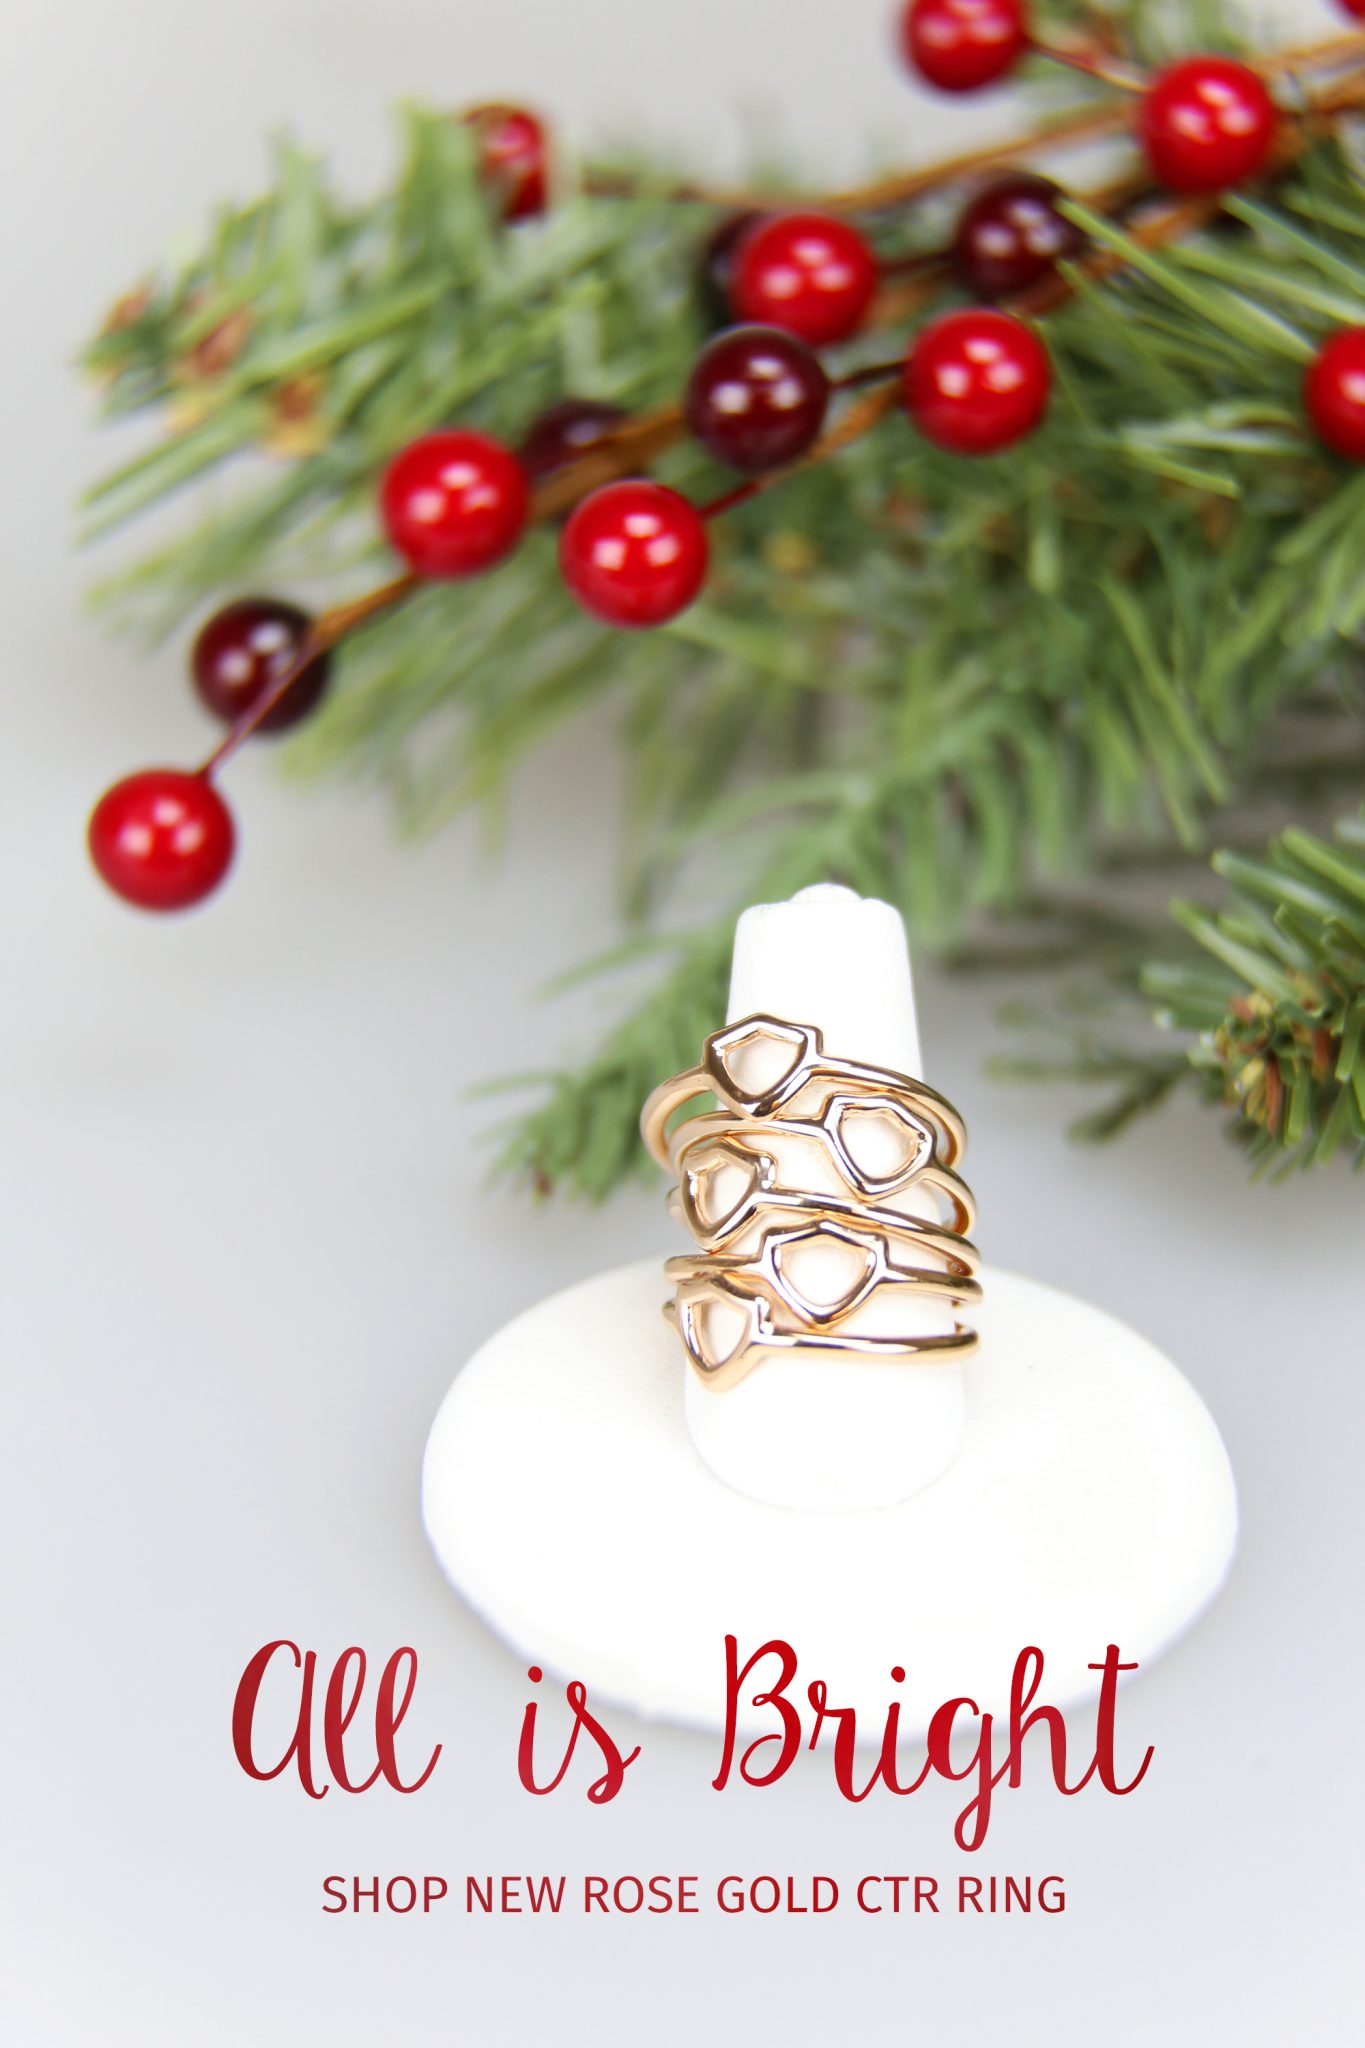 rose gold ctr ring christmas